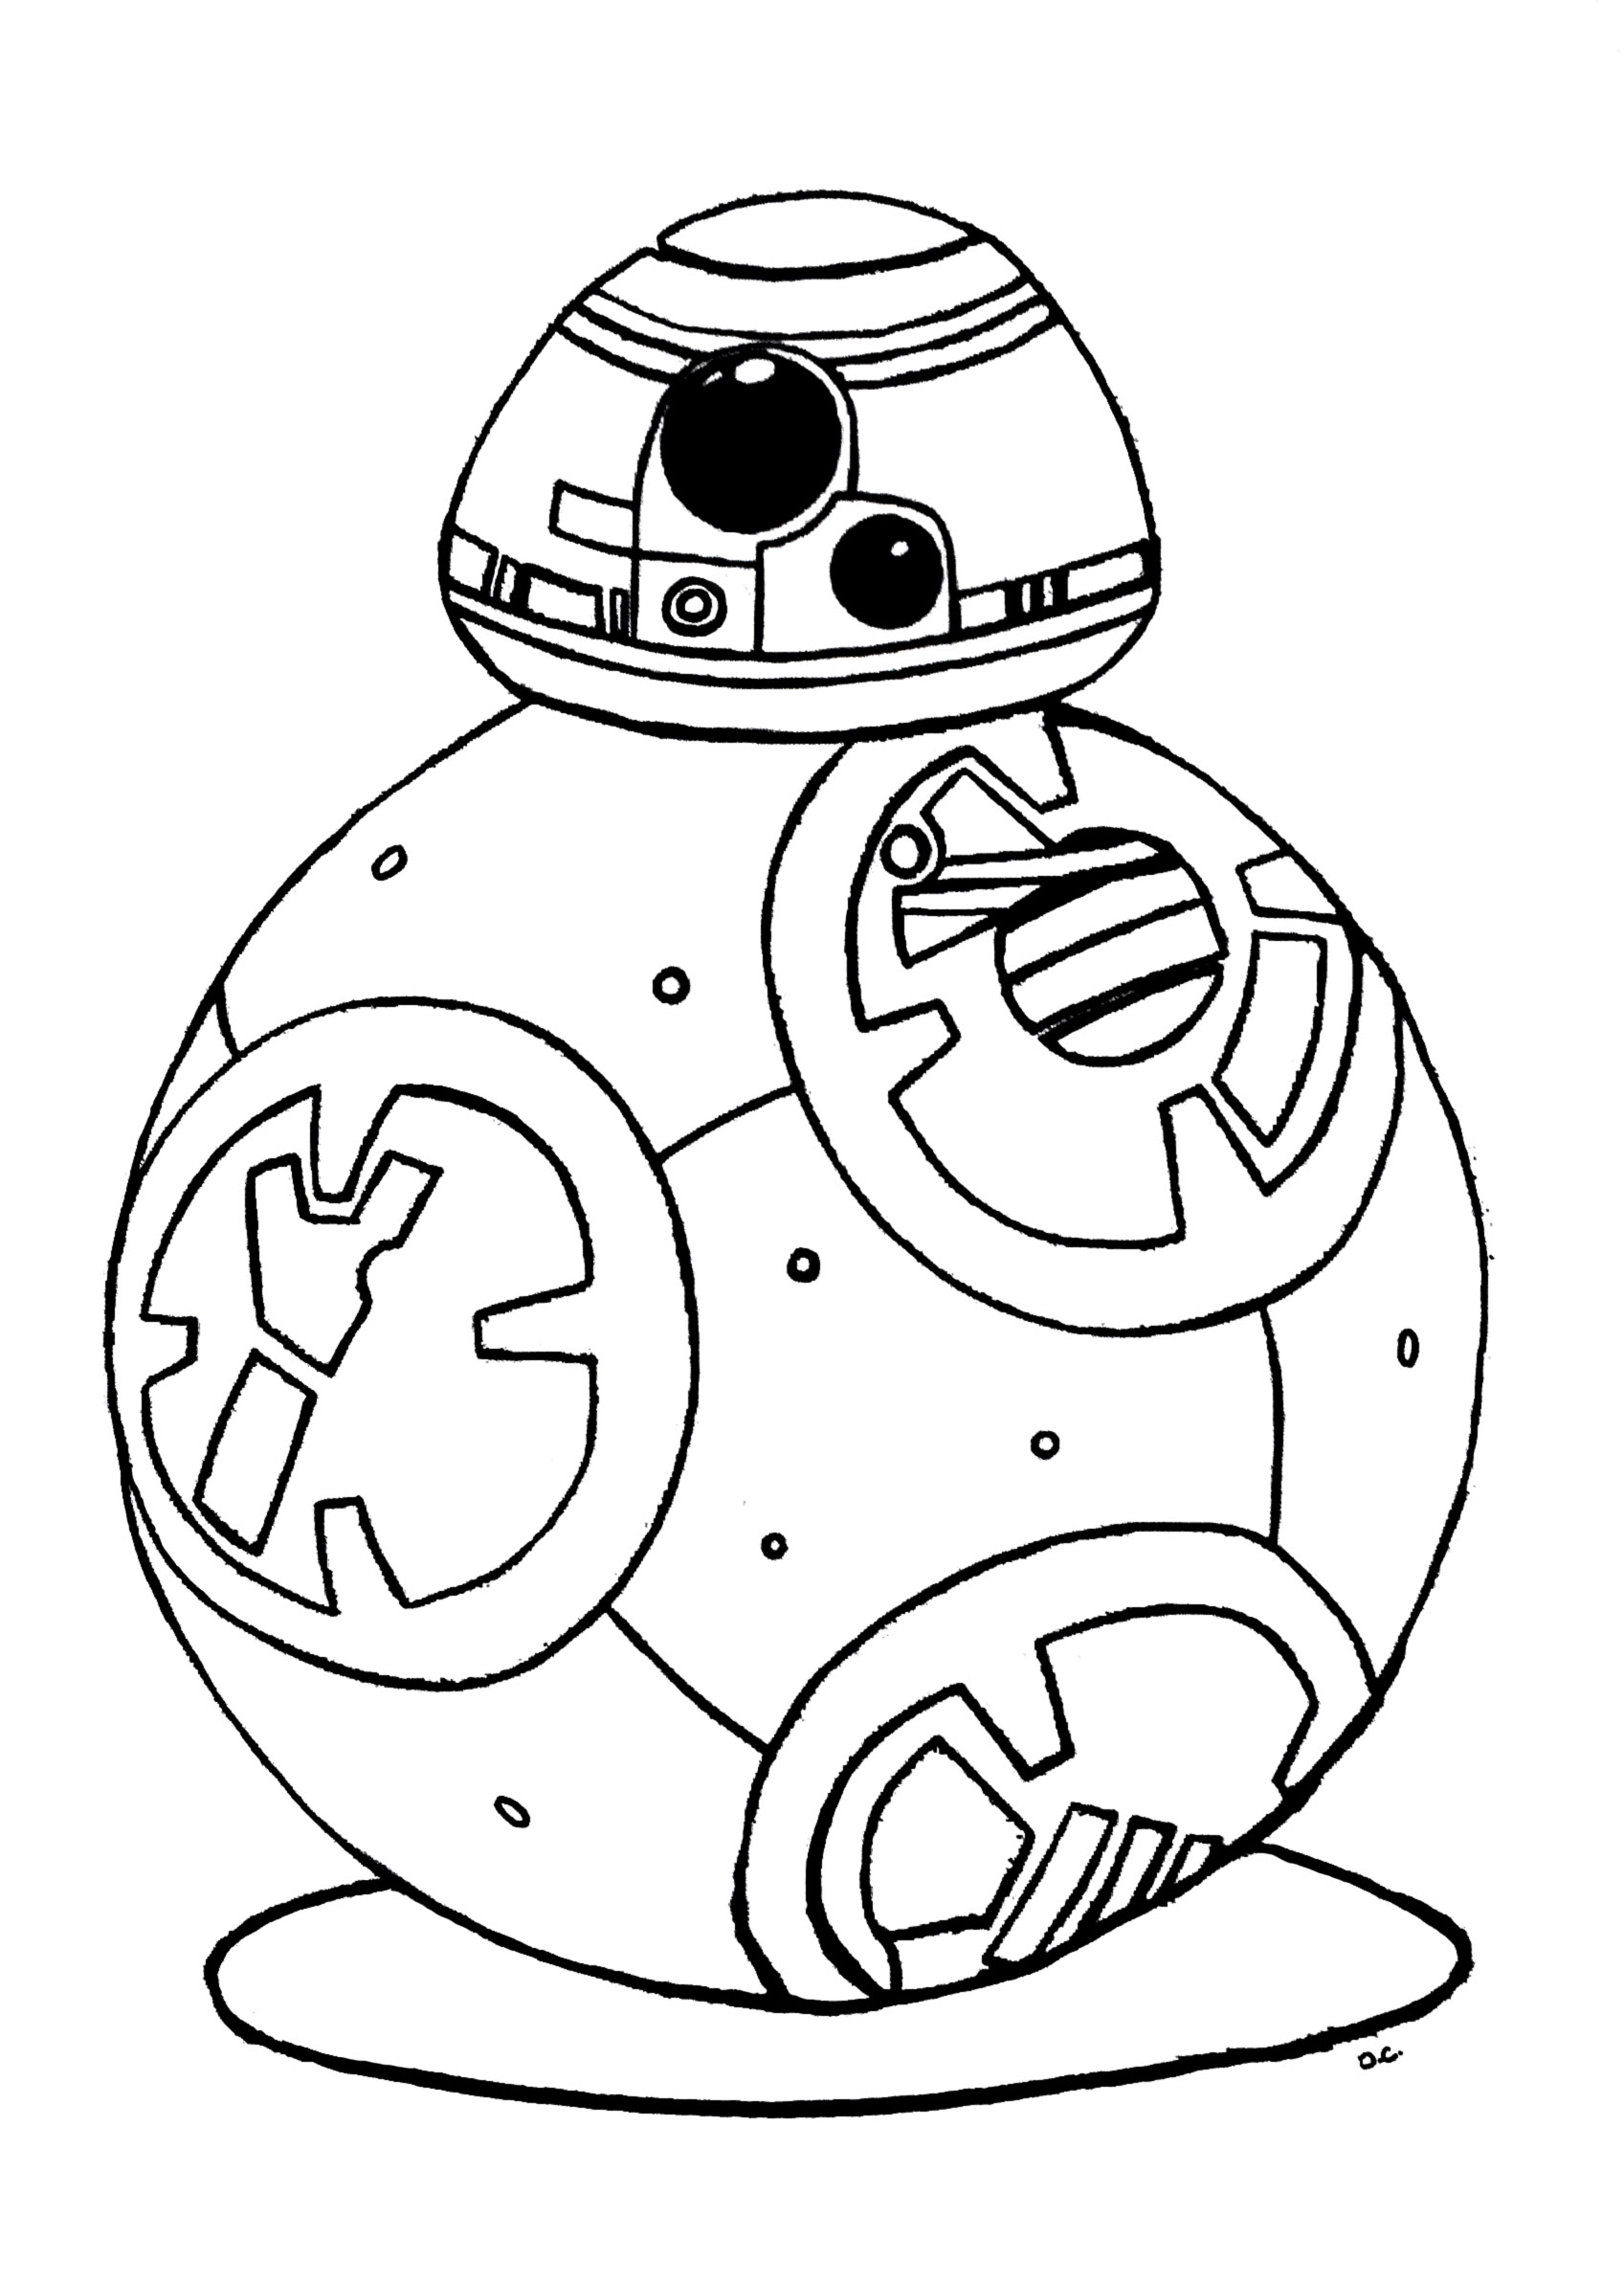 color pages star wars printable coloring pages star color pages wars